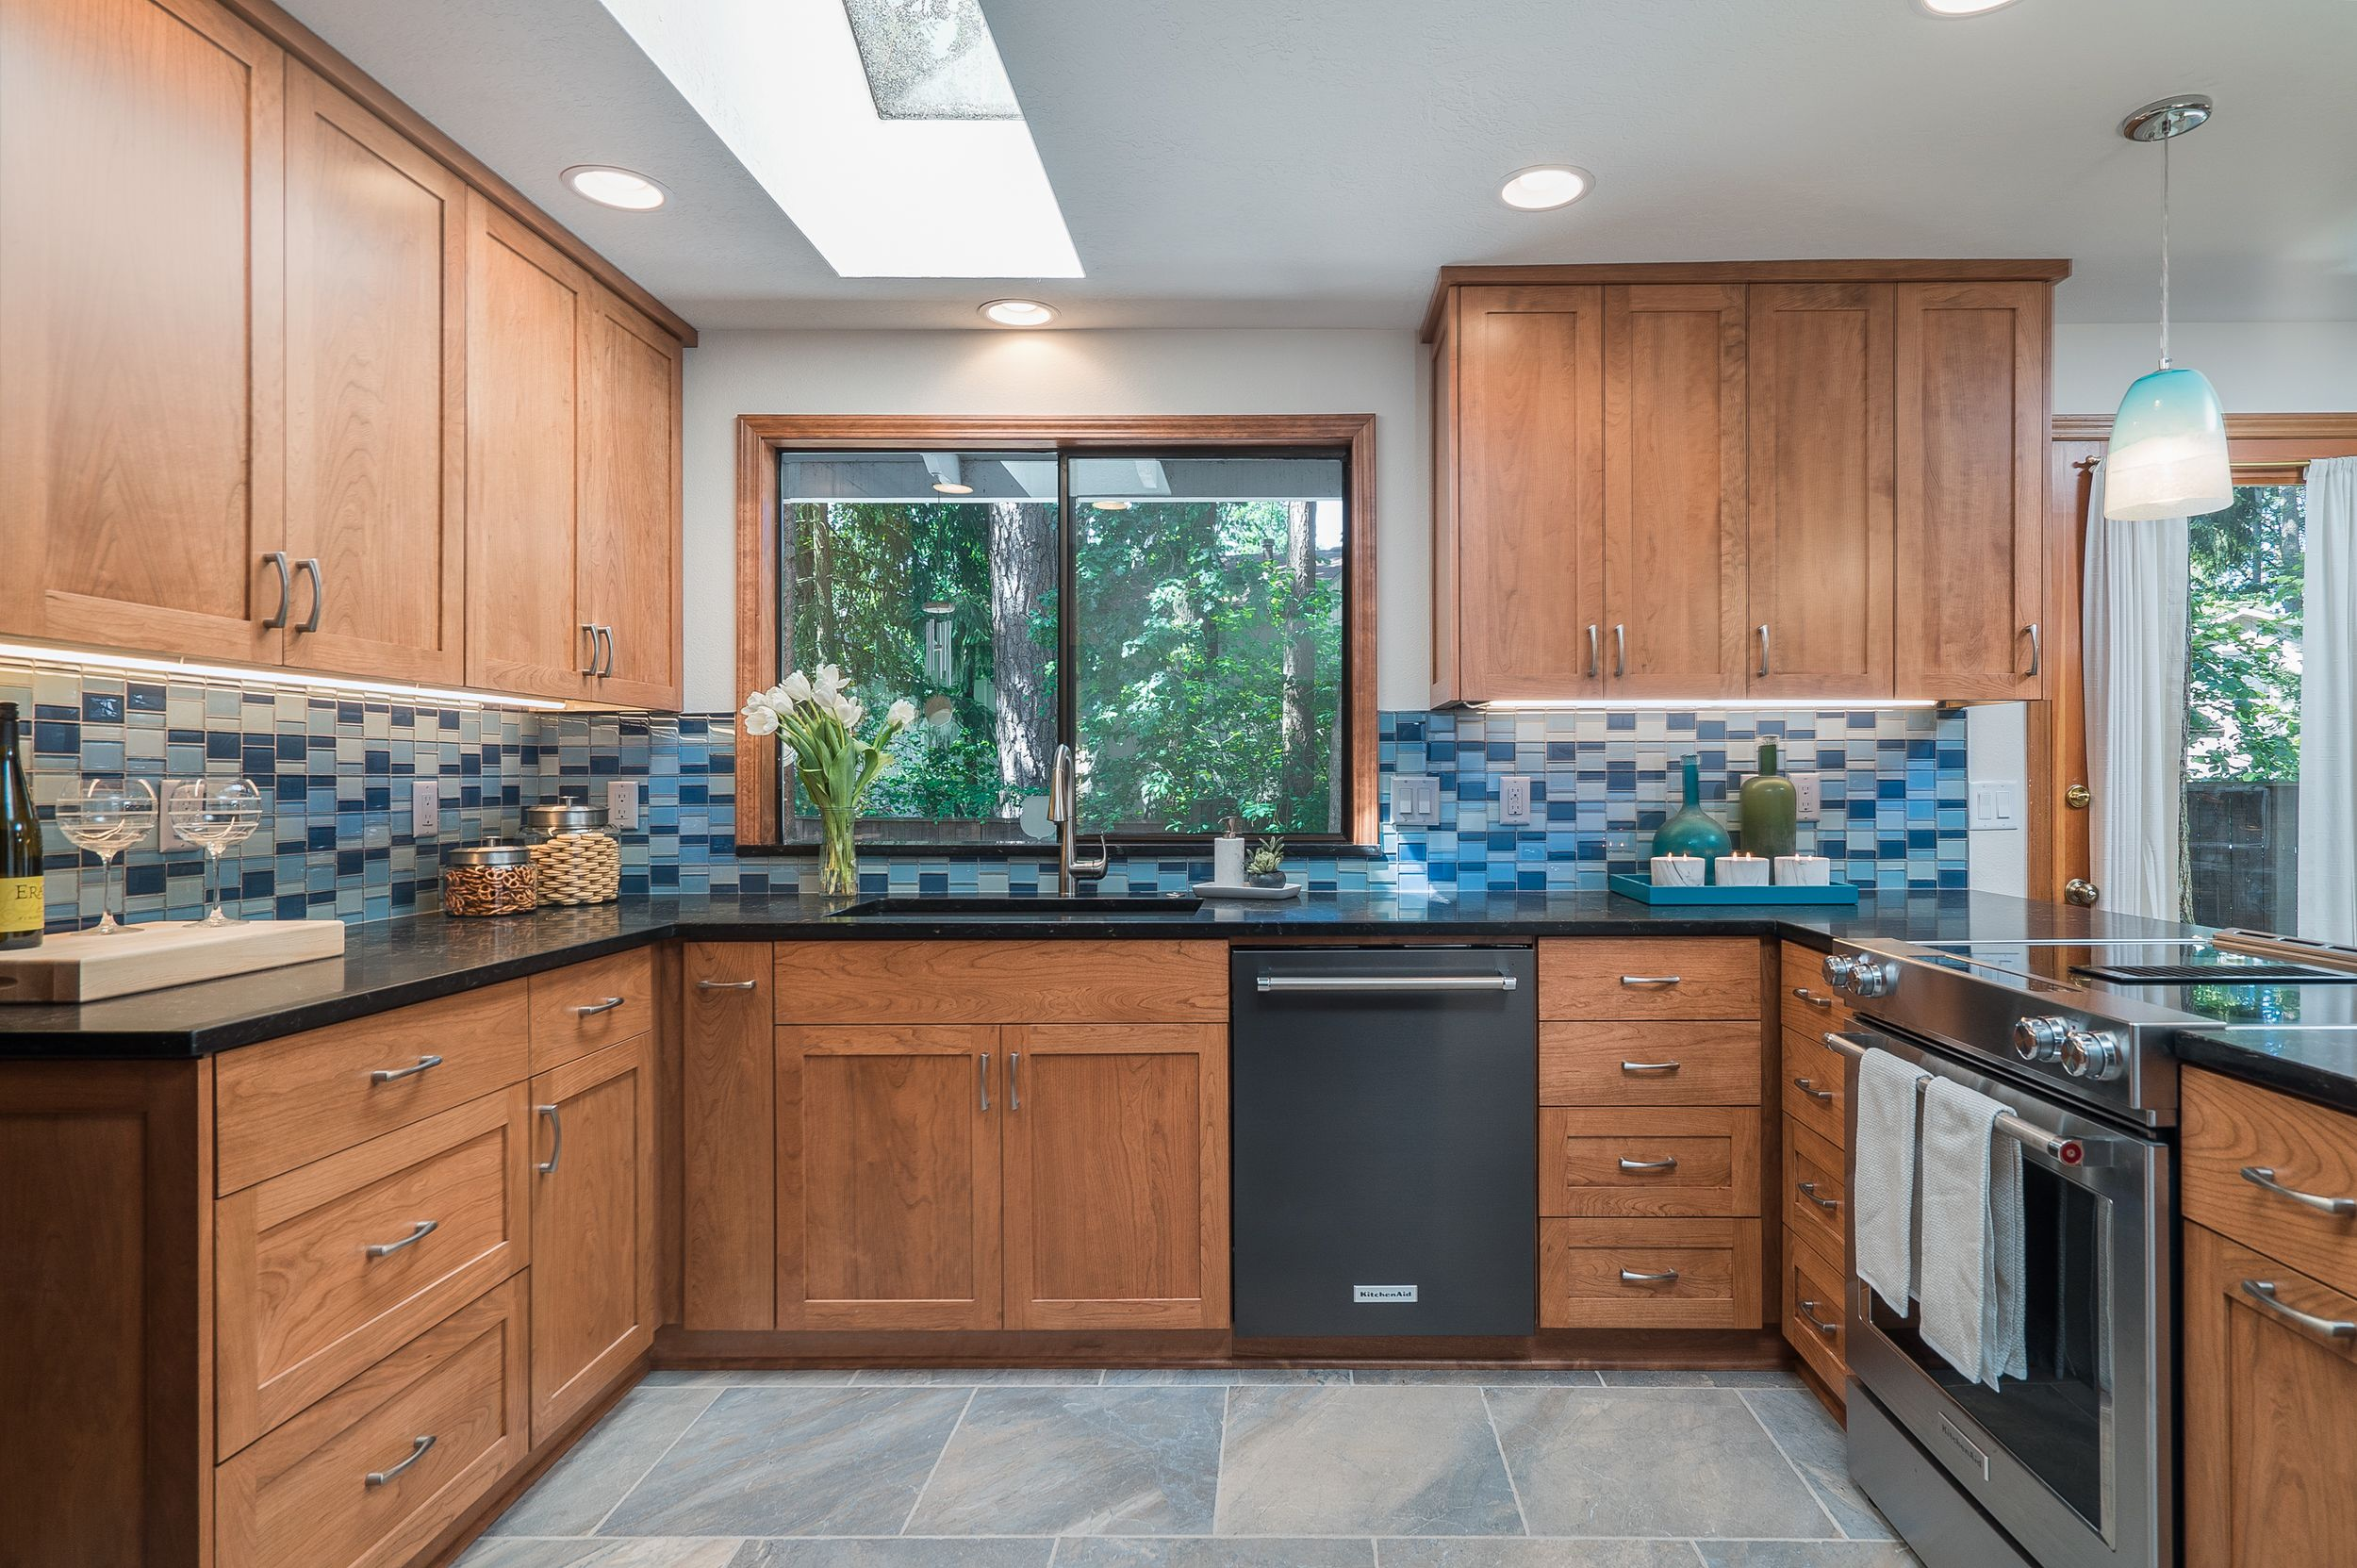 This Remodeled Kitchen In Beaverton Oregon Now Features Plenty Of Storage A Dynamic Backspl Kitchen Cabinets Kitchen Cabinets And Countertops Kitchen Design